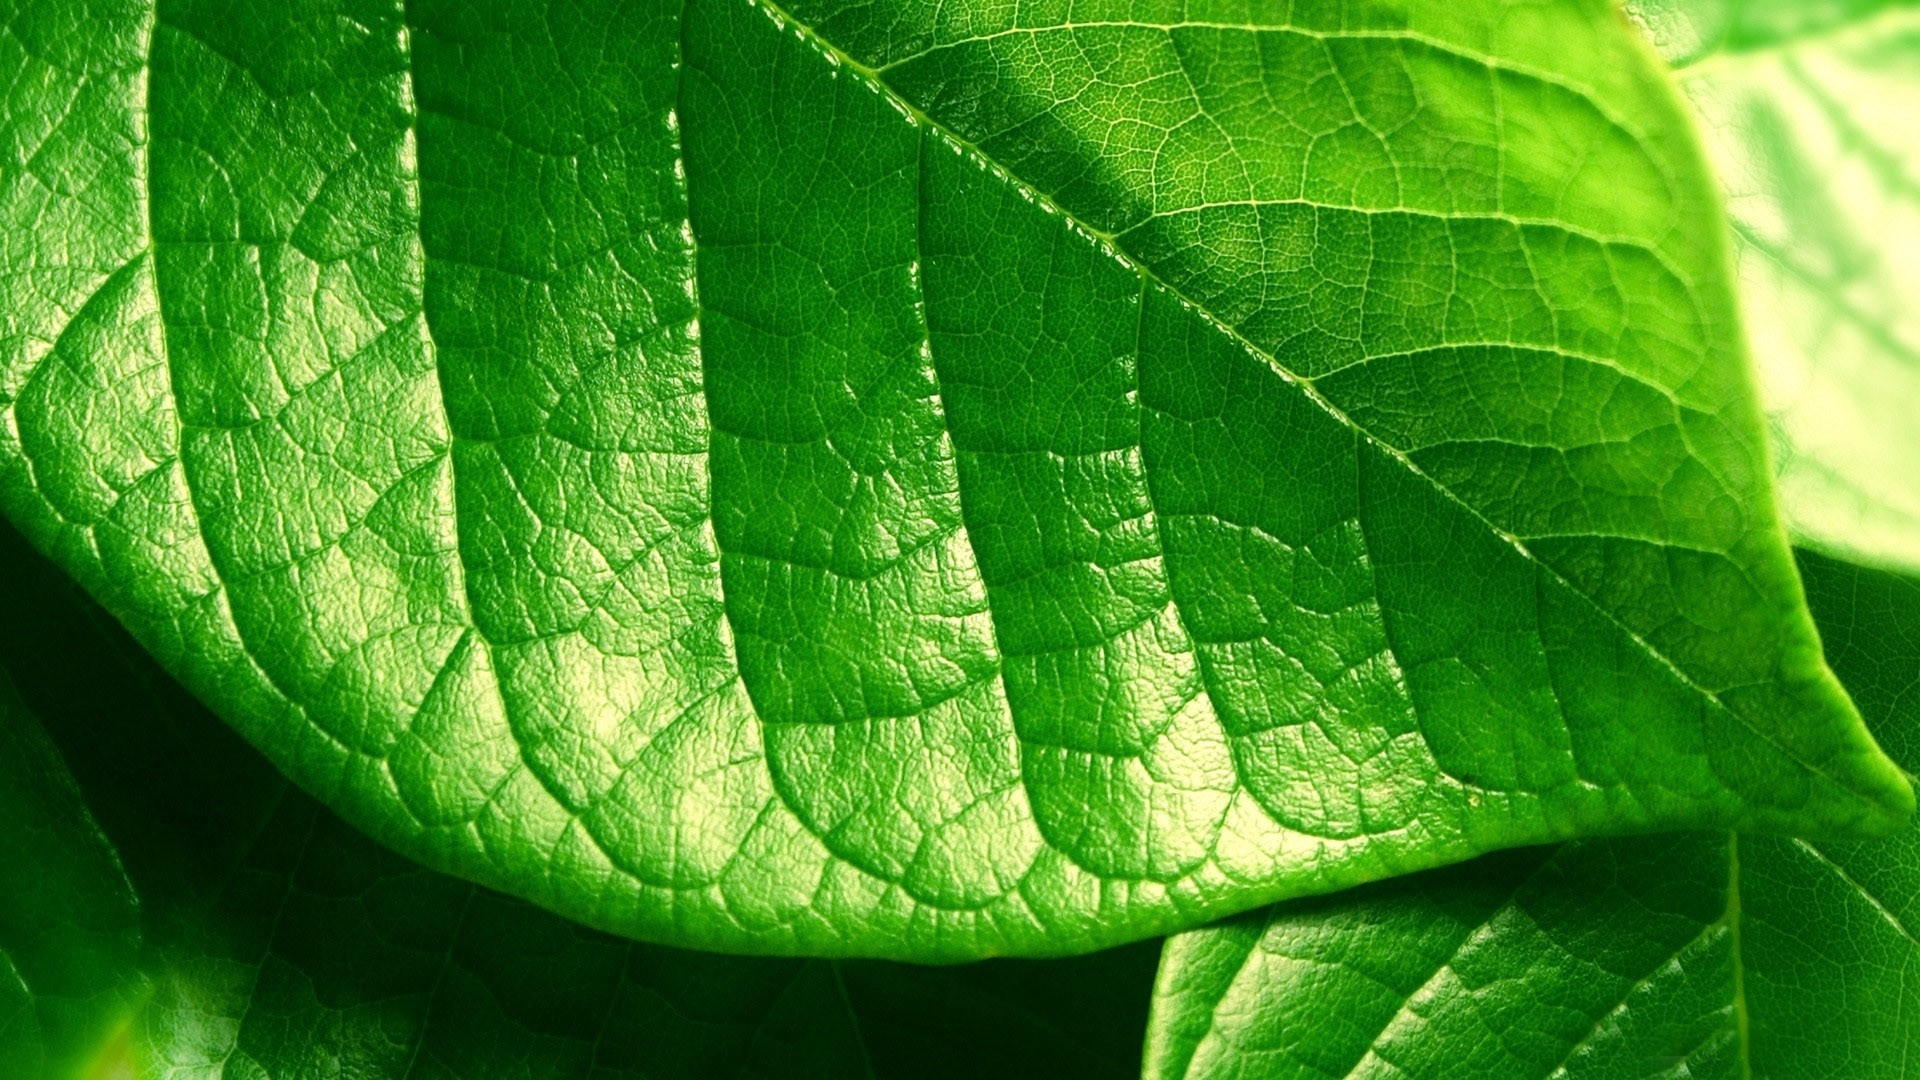 464032 Green Leaf Wallpapers